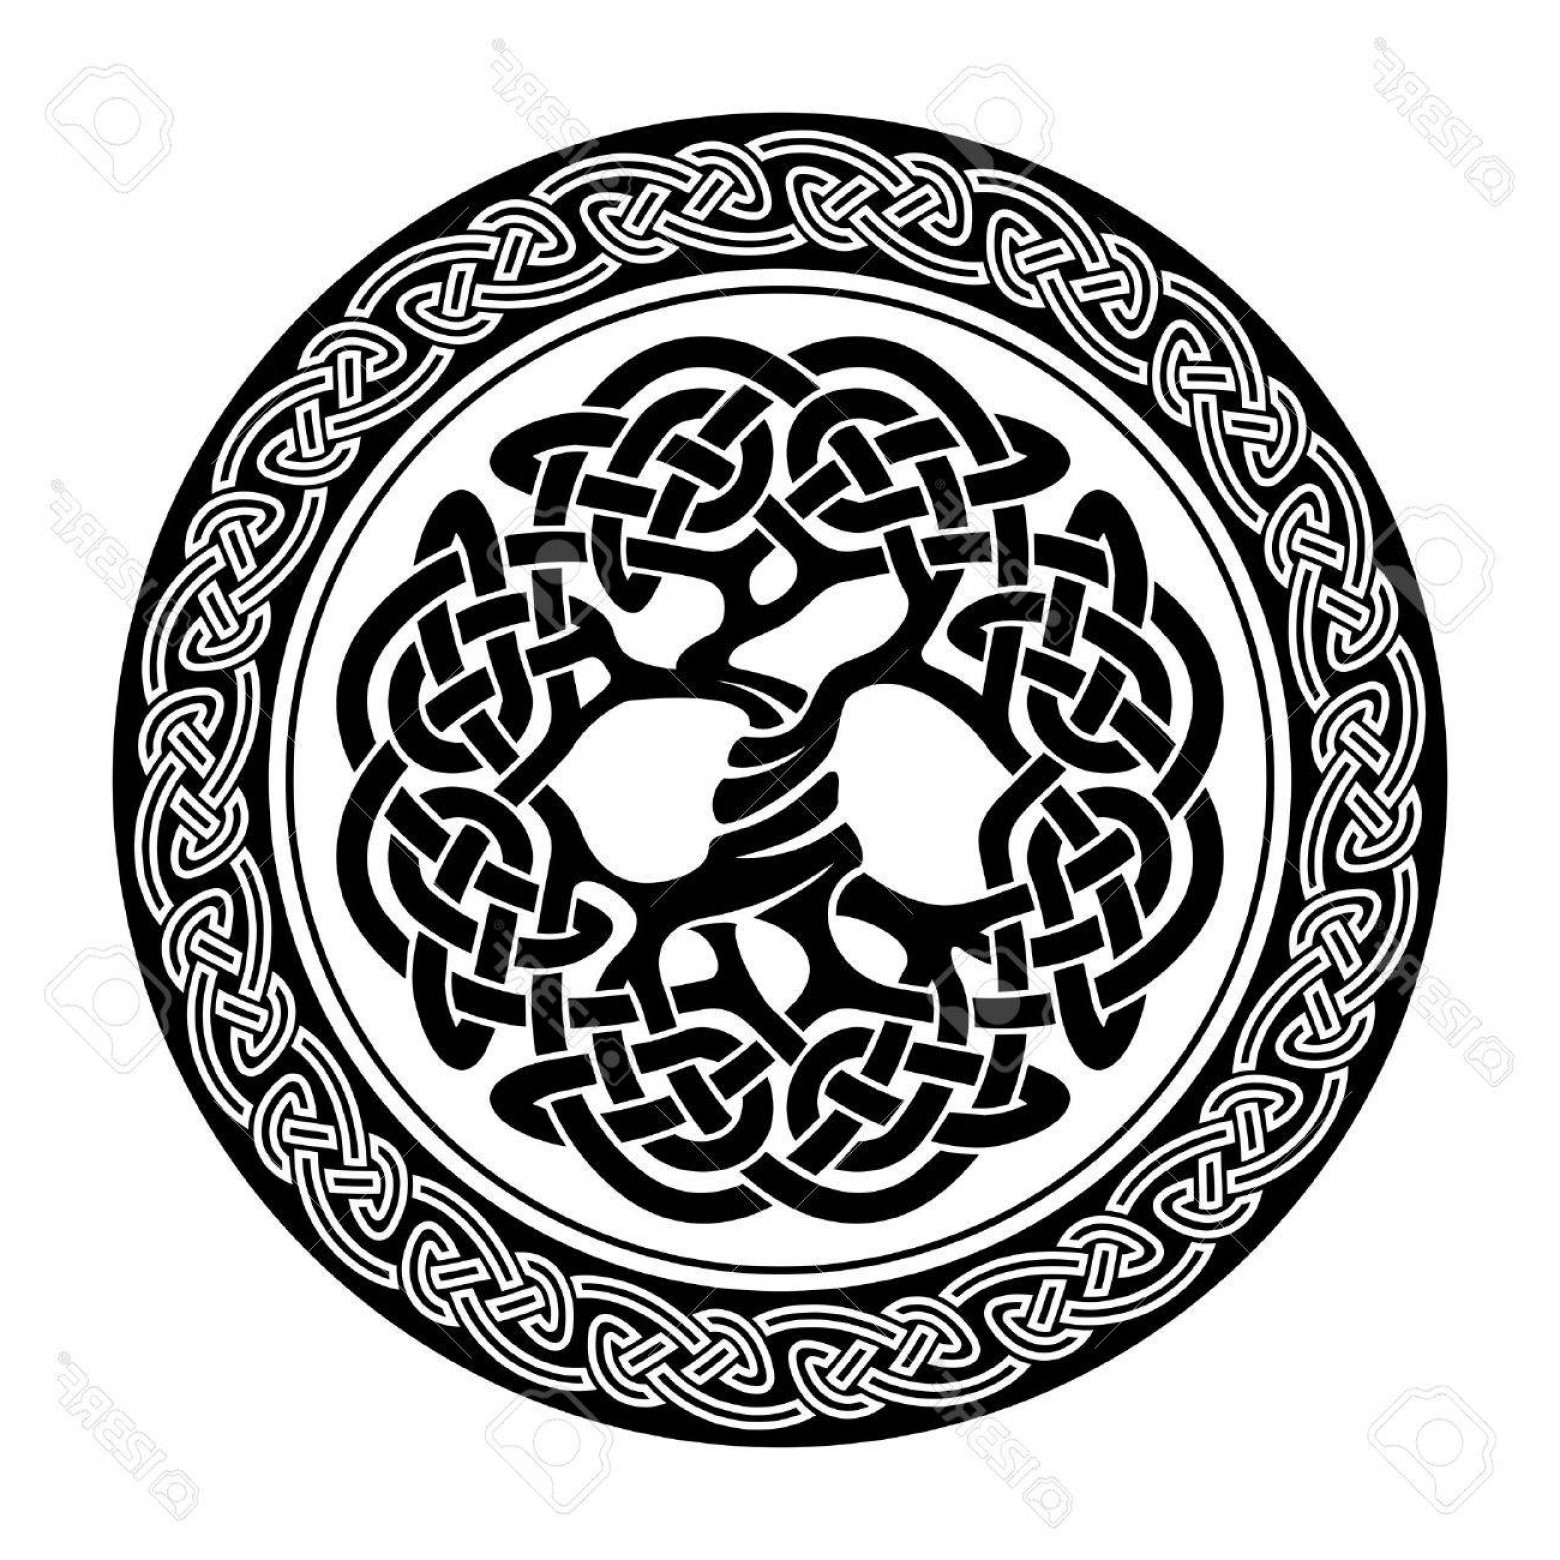 Celtic Tree Vector: Photostock Vector Black And White Illustration Of Celtic Tree Of Life Vector Illustration